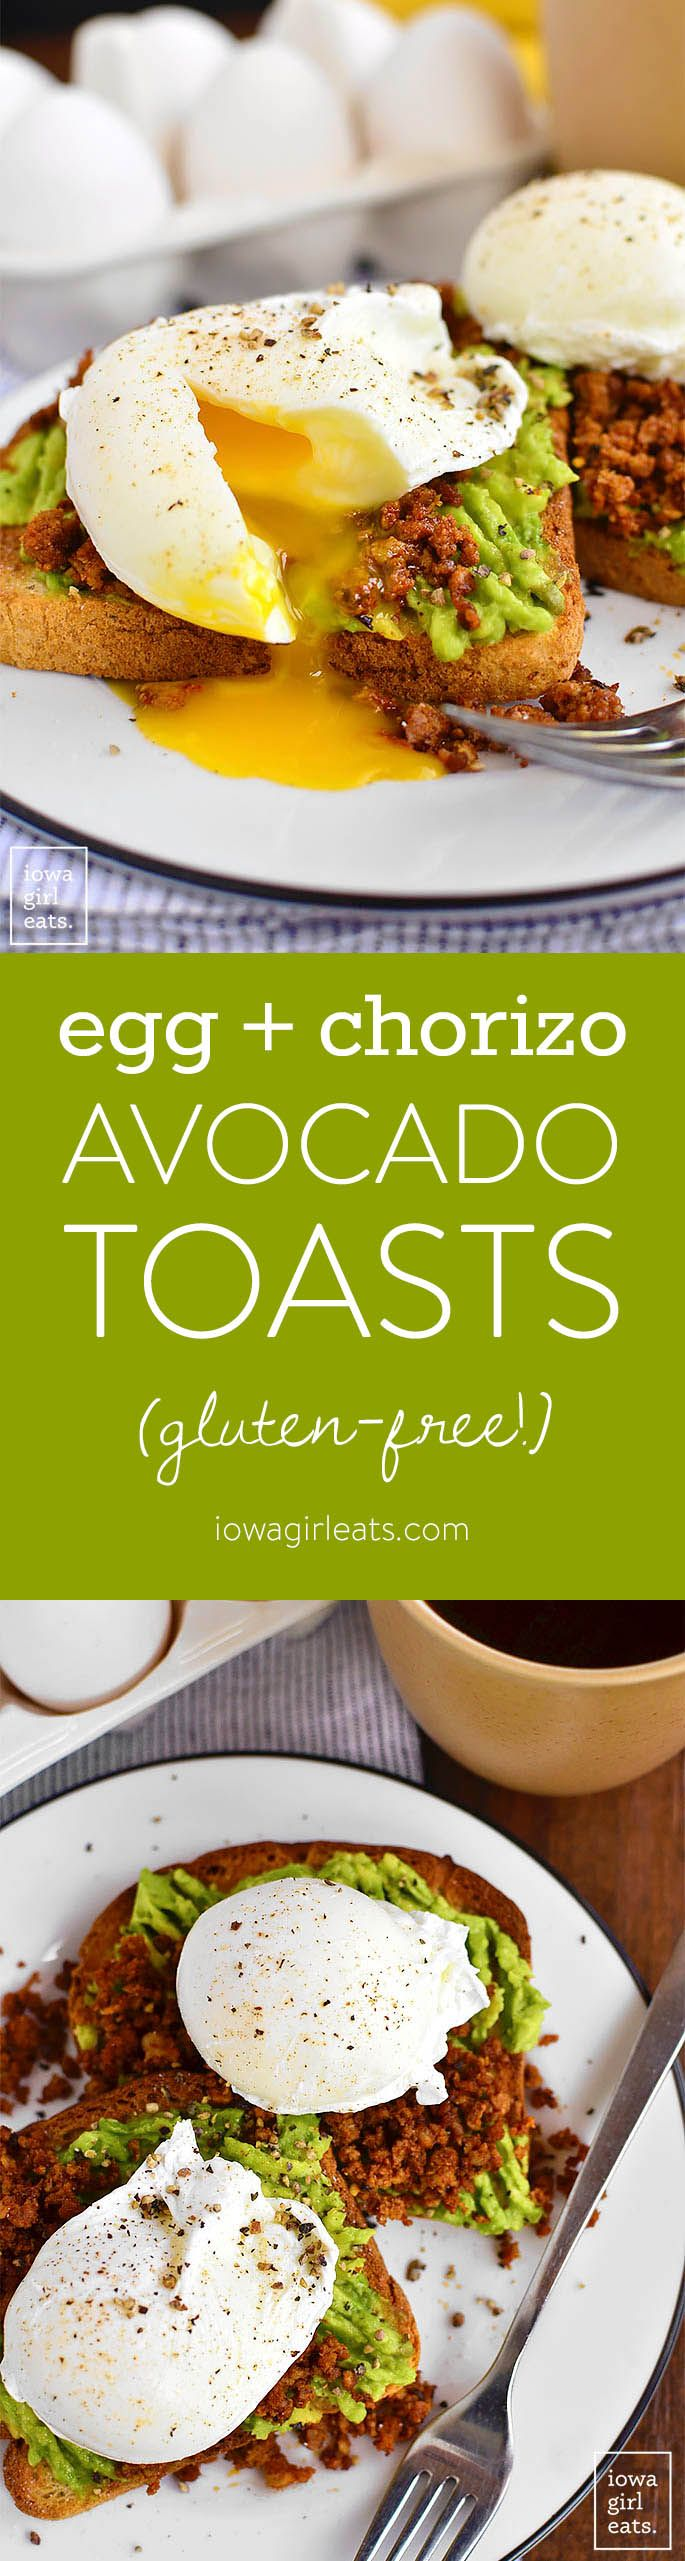 ... and Chorizo Avocado Toasts | Recipe | Avocado Toast, Chorizo and Toast